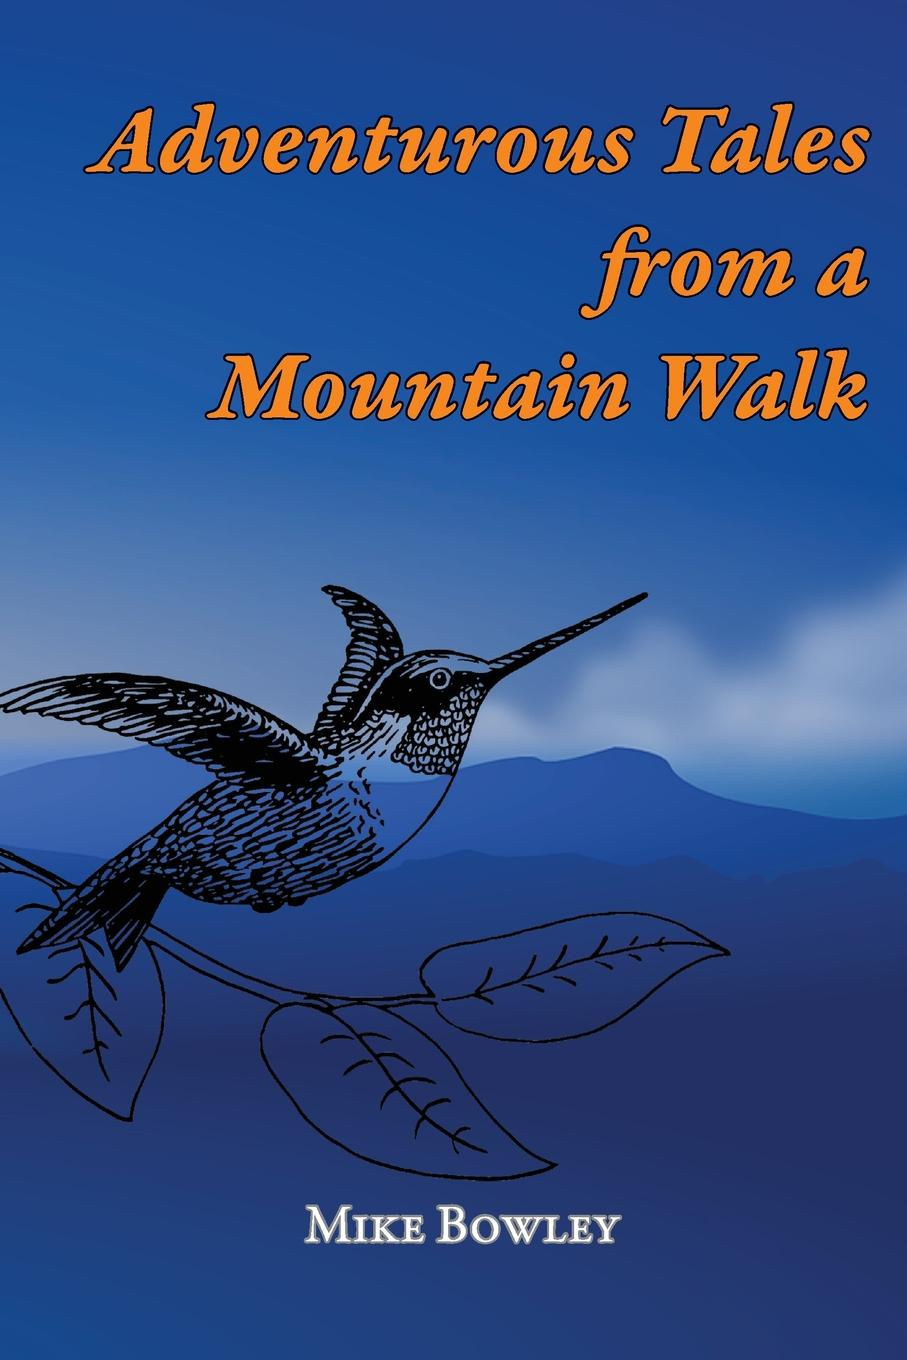 Mike Bowley Adventurous Tales from a Mountain Walk